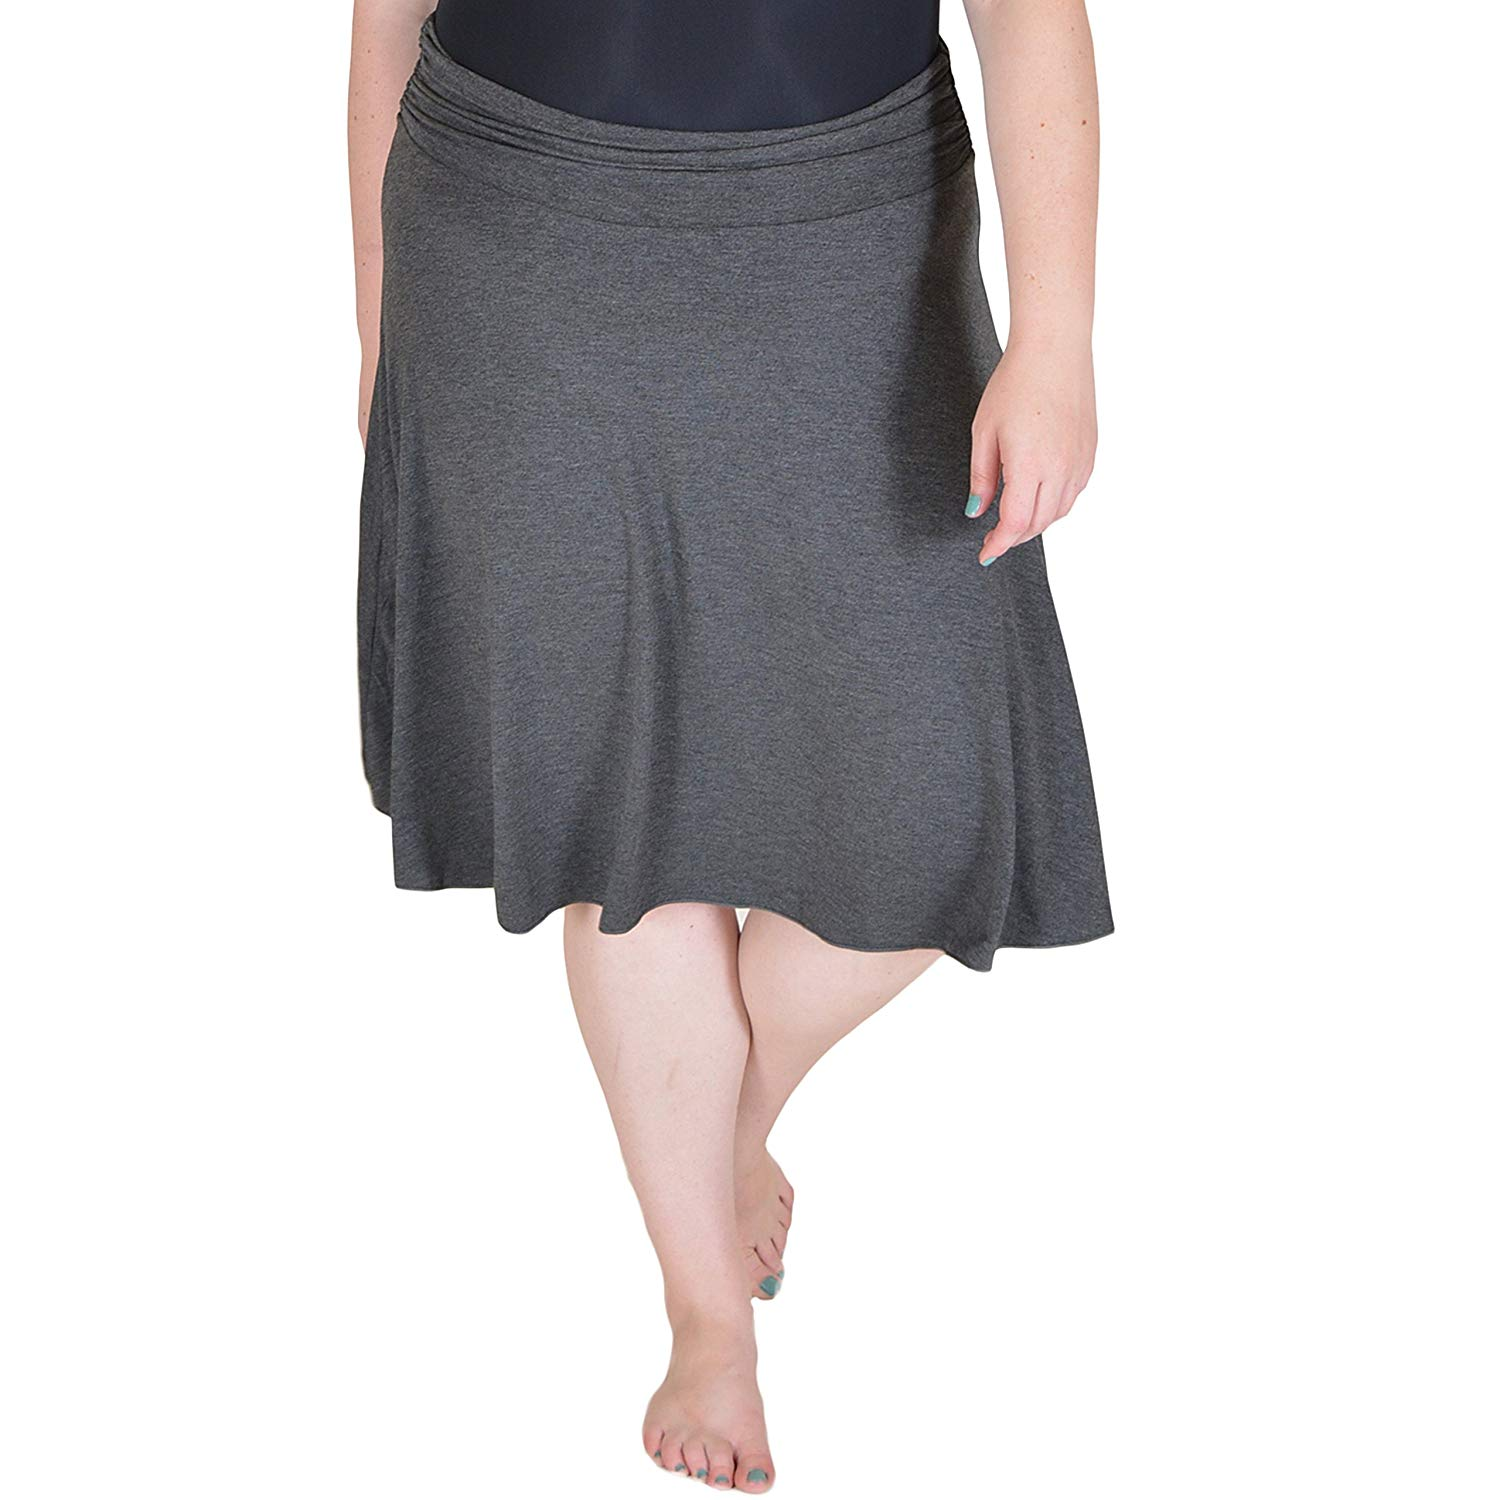 7e11c6925c Get Quotations · Stretch is Comfort Women's Plus Size Knee Length Flowy  Skirt